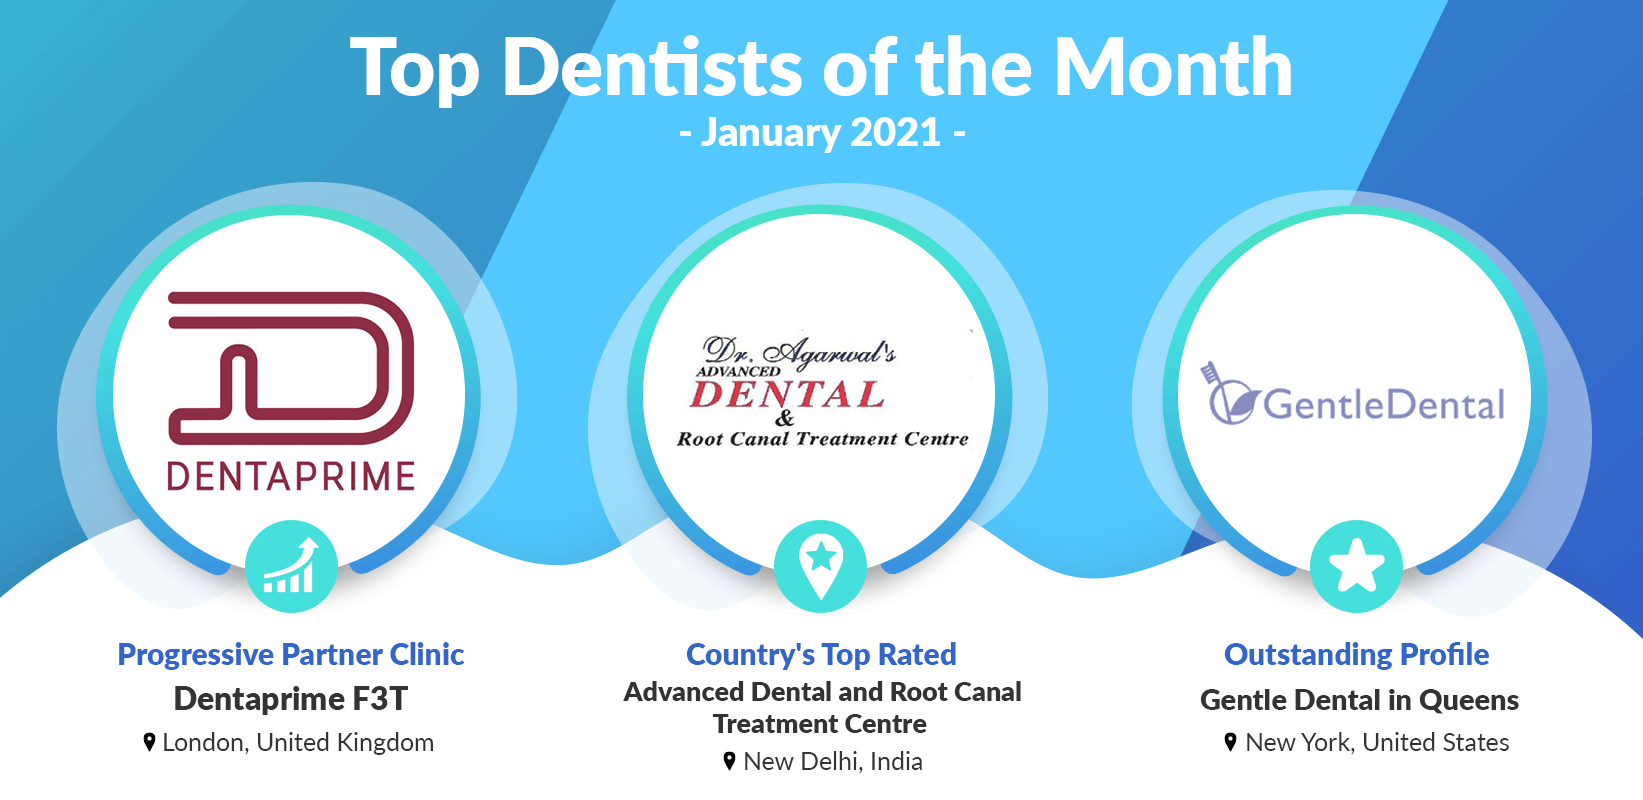 1. January Dentist of the month 2021